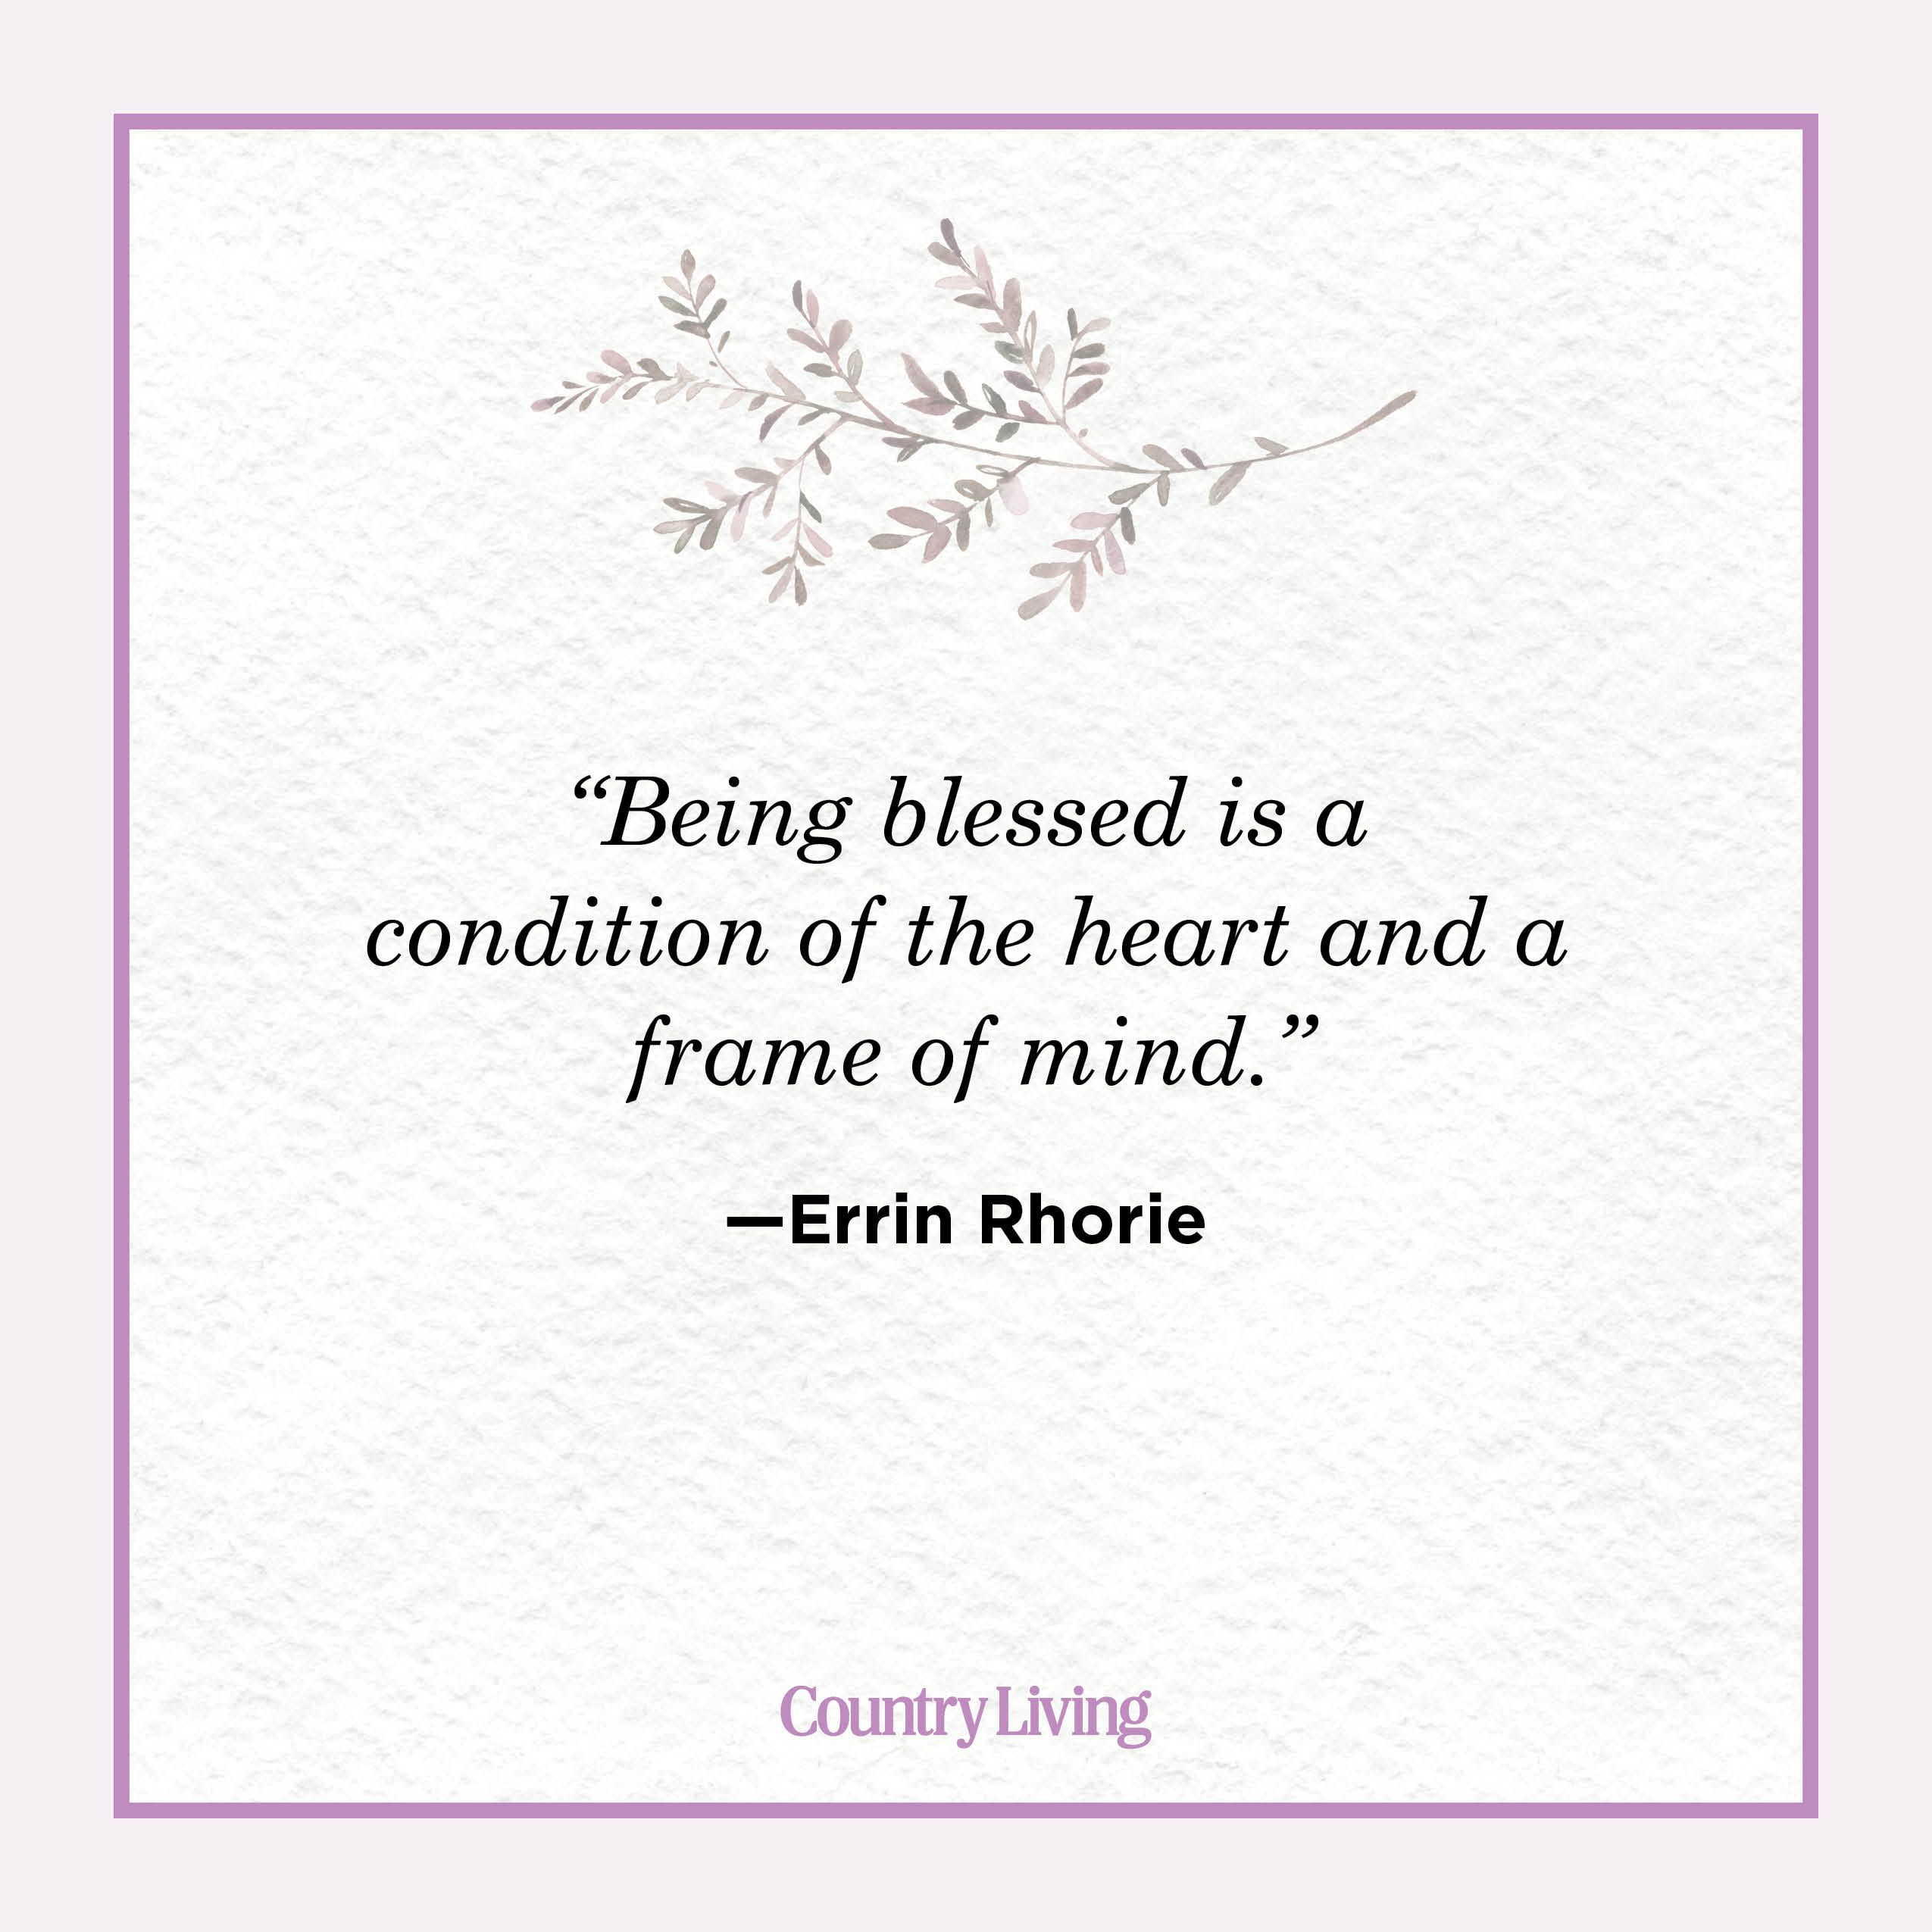 10 Blessed Quotes - Inspirational Quotes About Being Blessed in Life